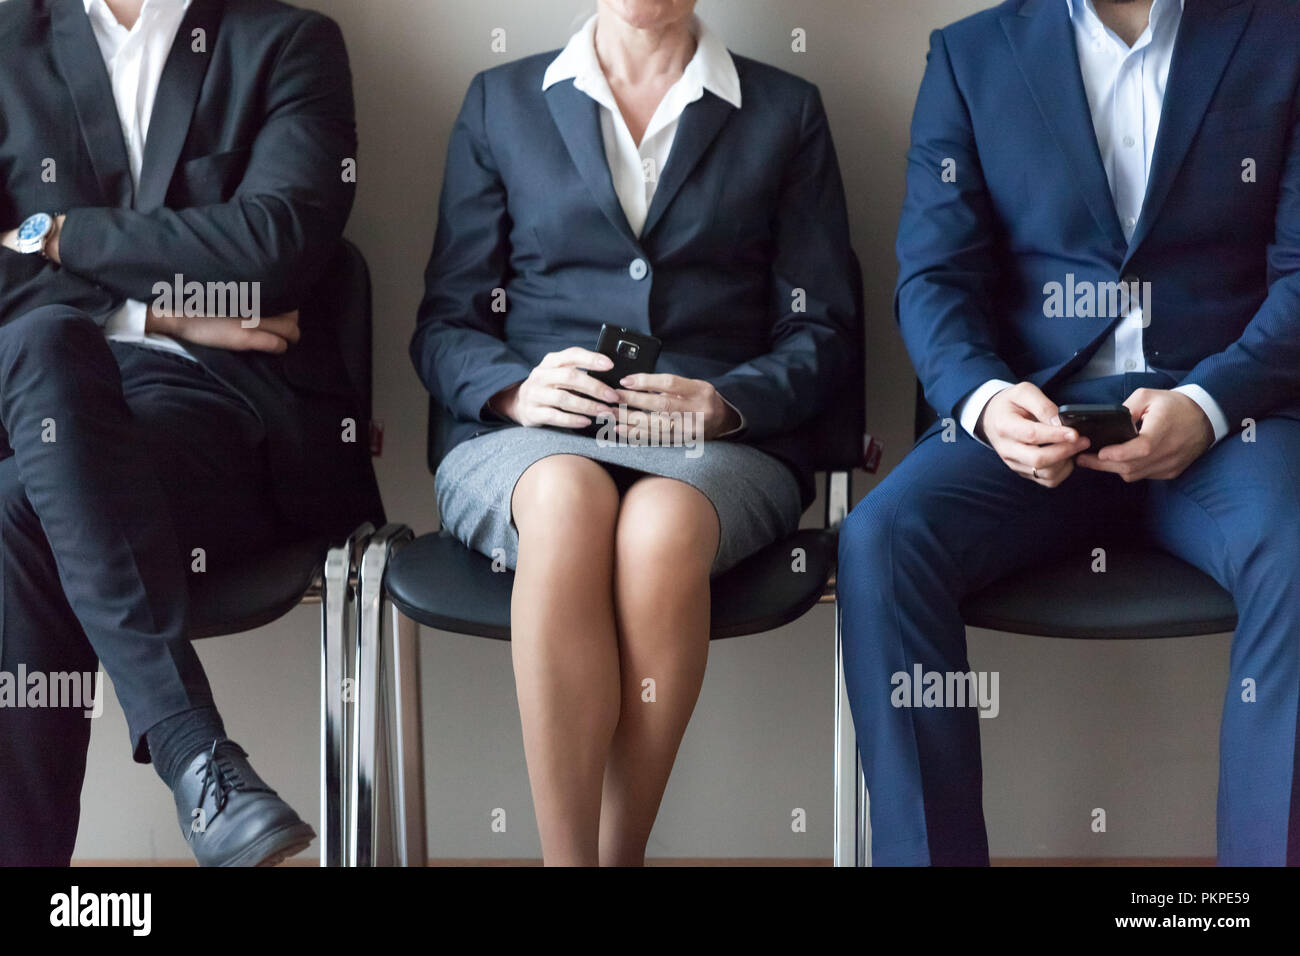 Business people sitting in chairs in queue waiting job interview - Stock Image